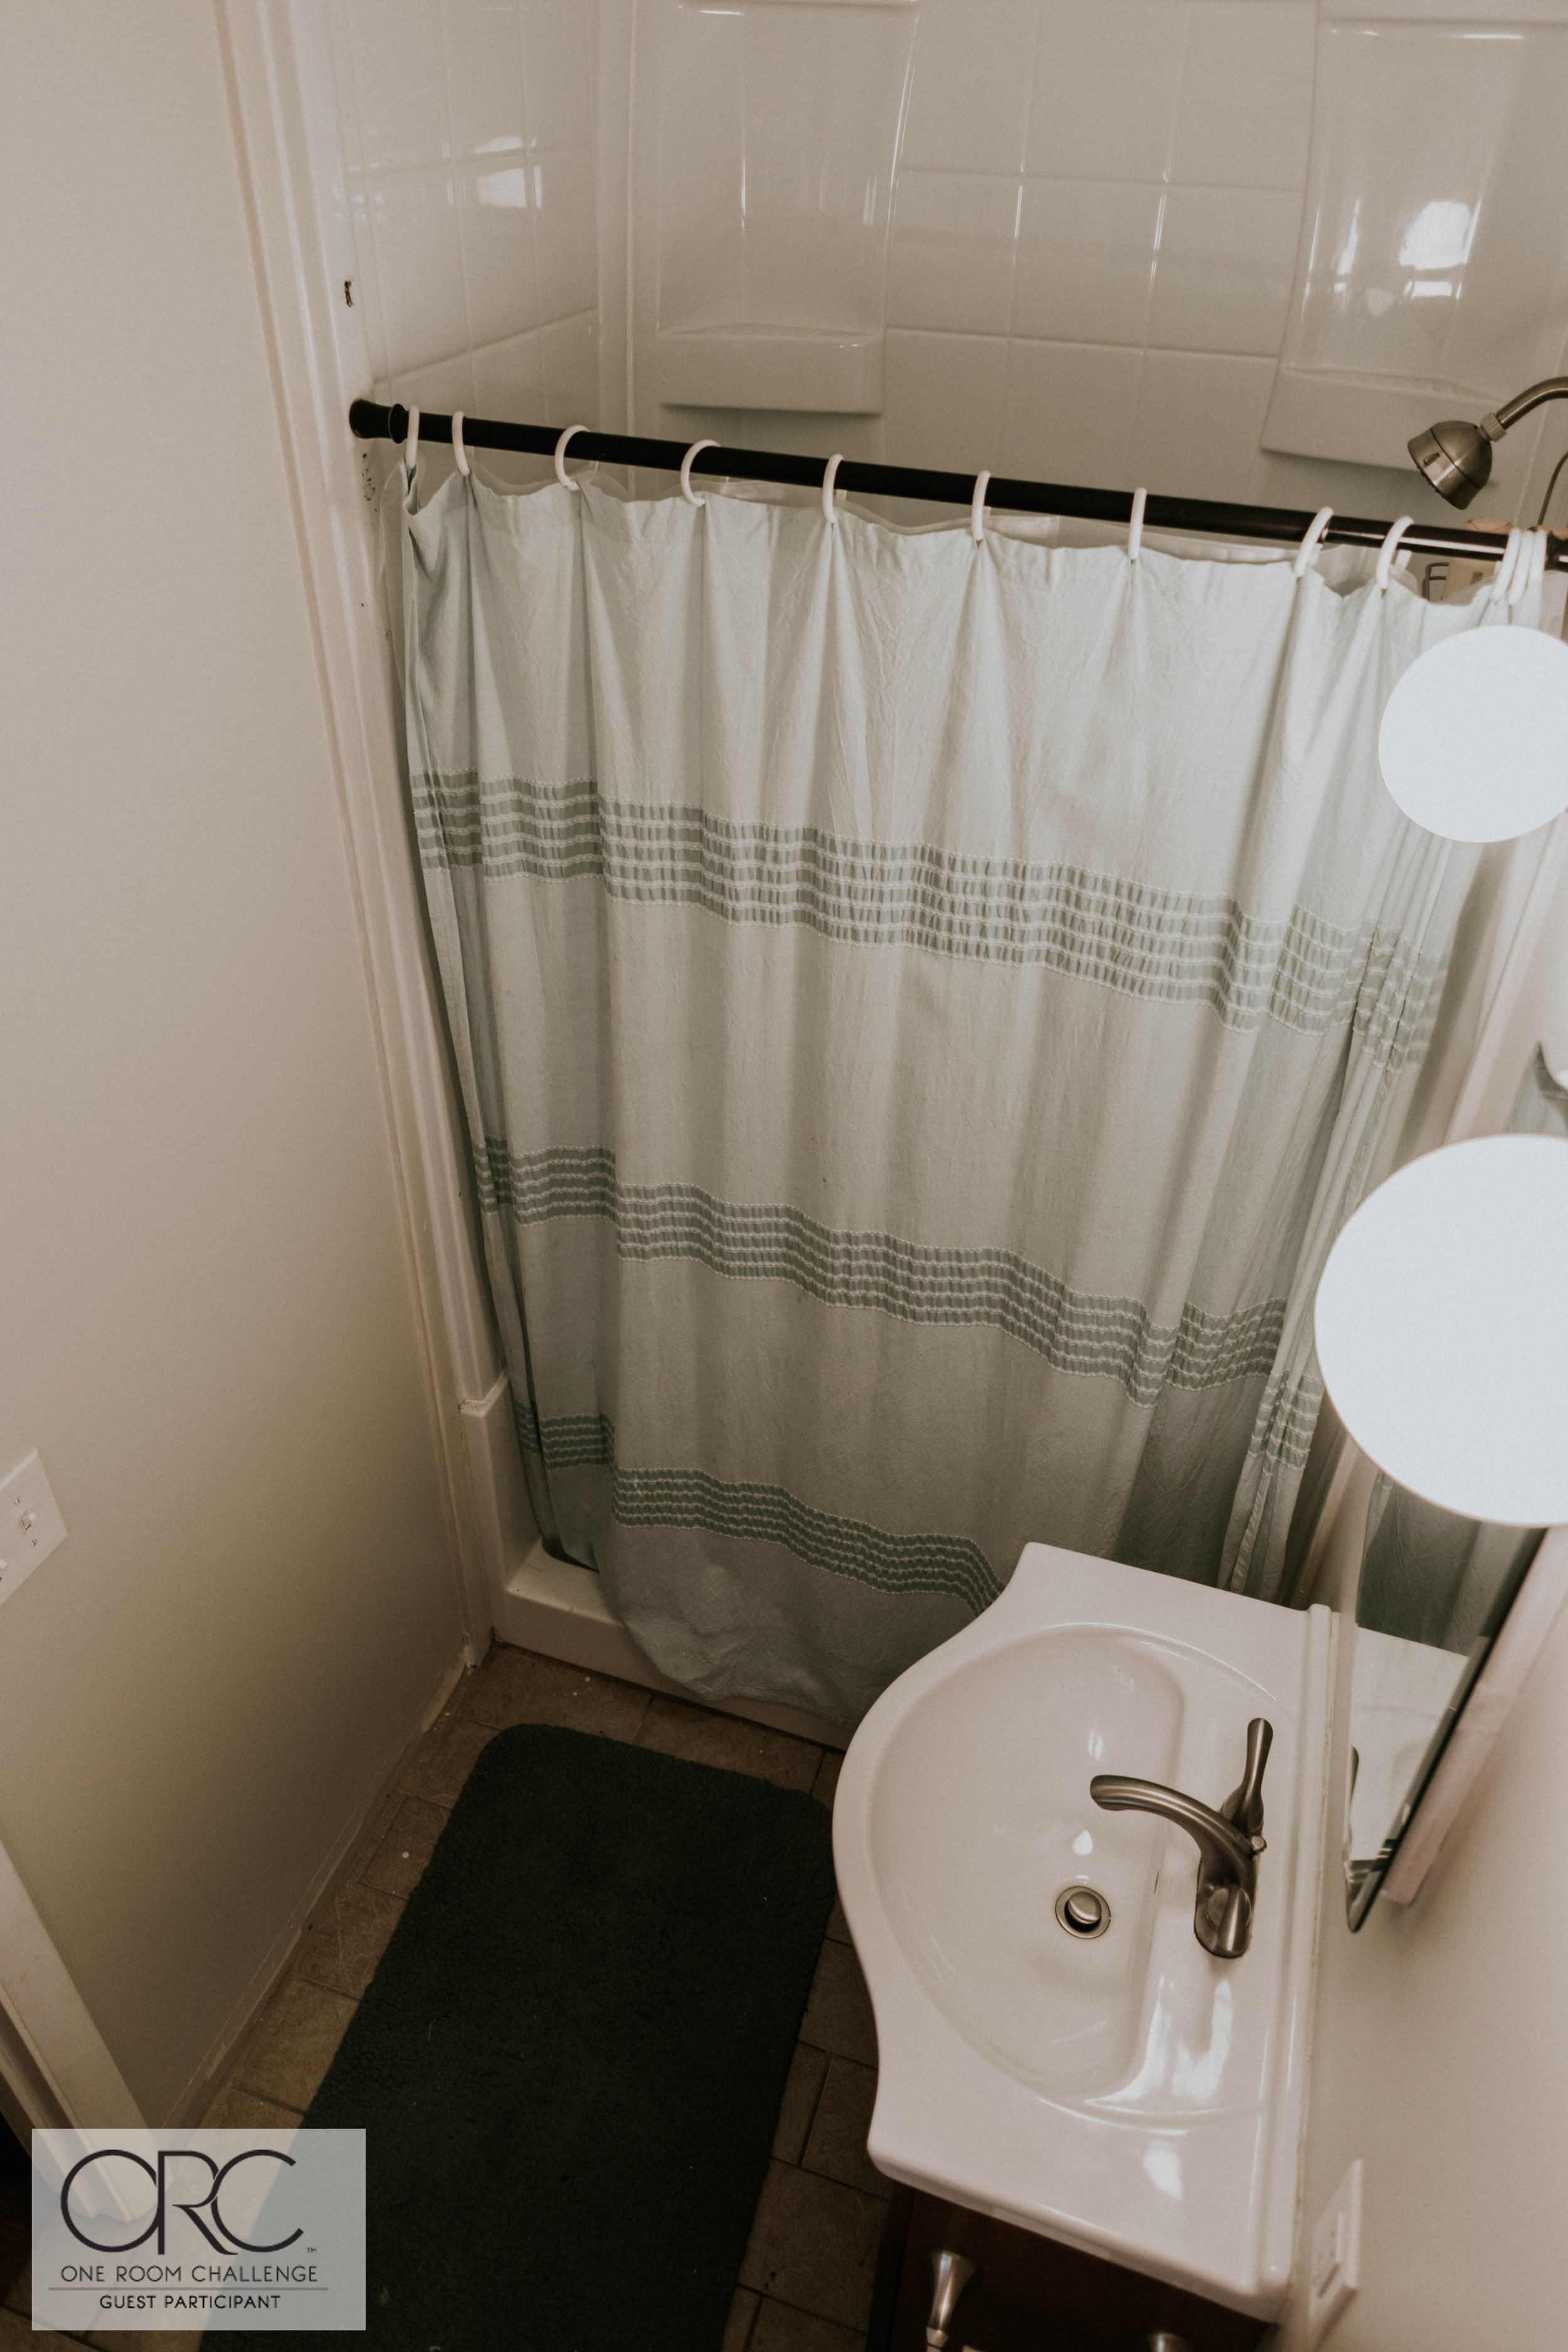 GUEST PARTICIPANT ONE ROOM CHALLENGE MASTER BATHROOM 3 (1 of 1).jpg